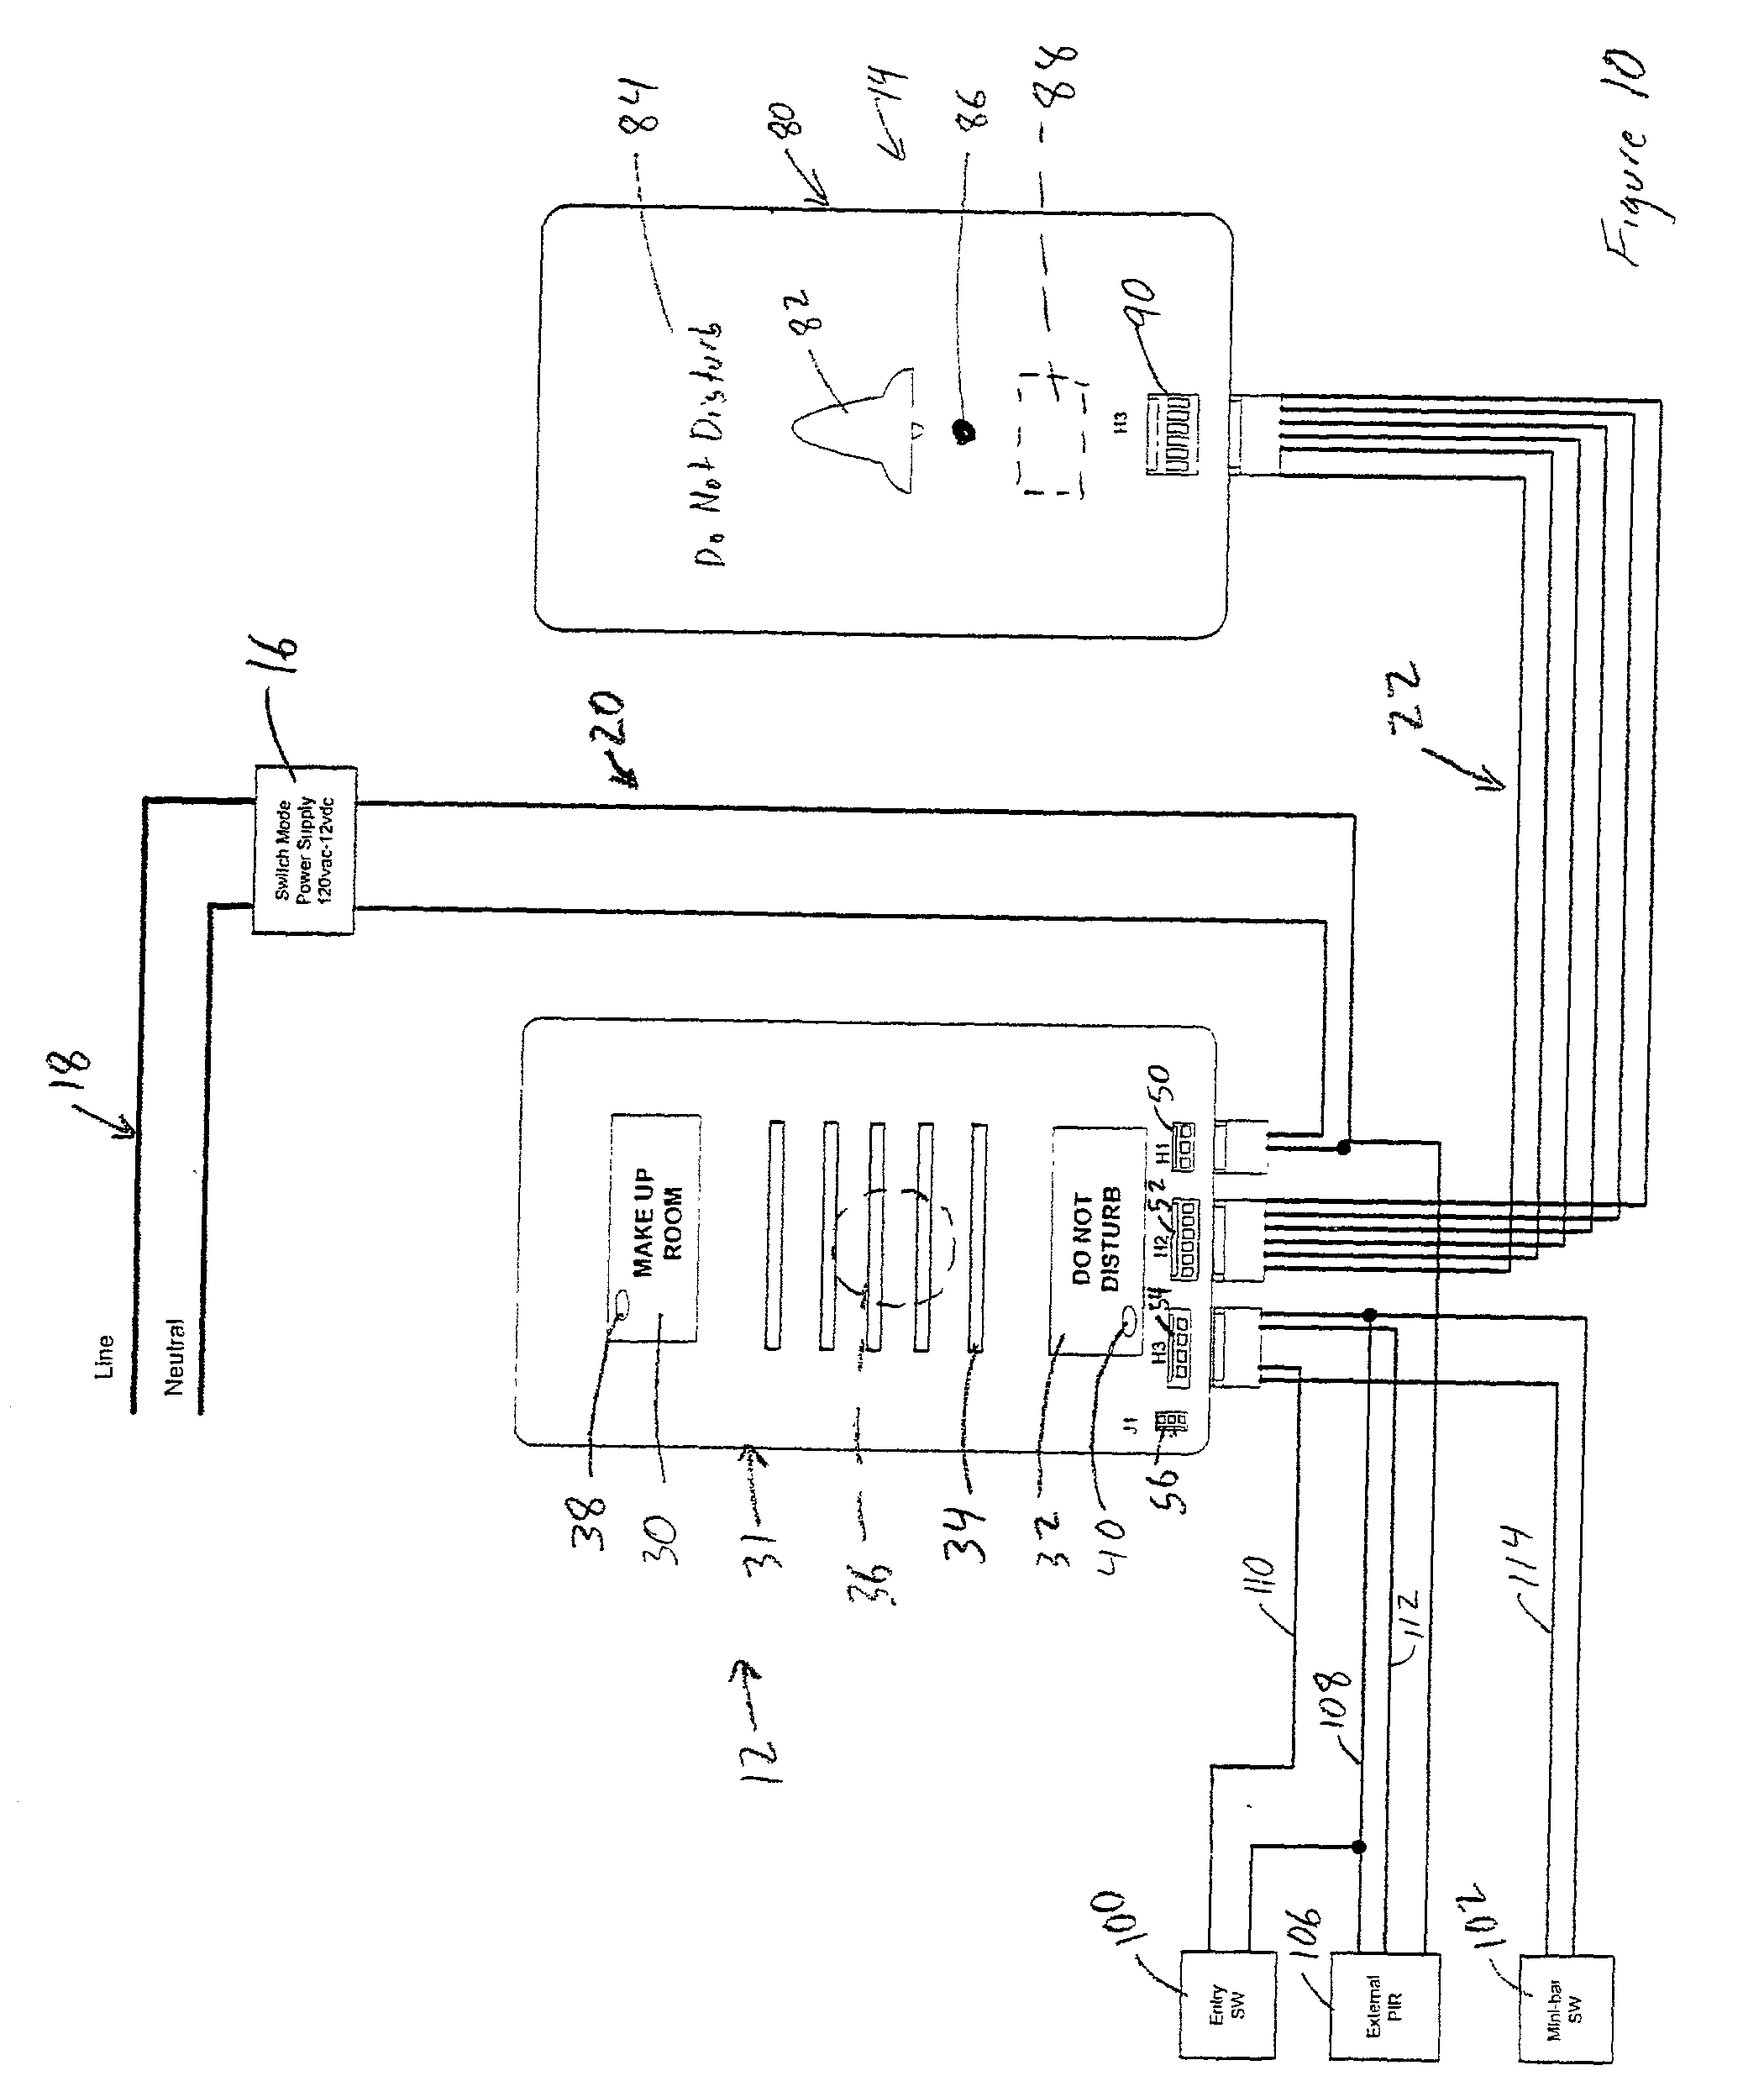 Totaline P474 1050 Wiring Diagram as well Thermostat Schaltplan besides Totaline P474 Wiring Diagram as well  on totaline thermostat wiring diagram p474 1050